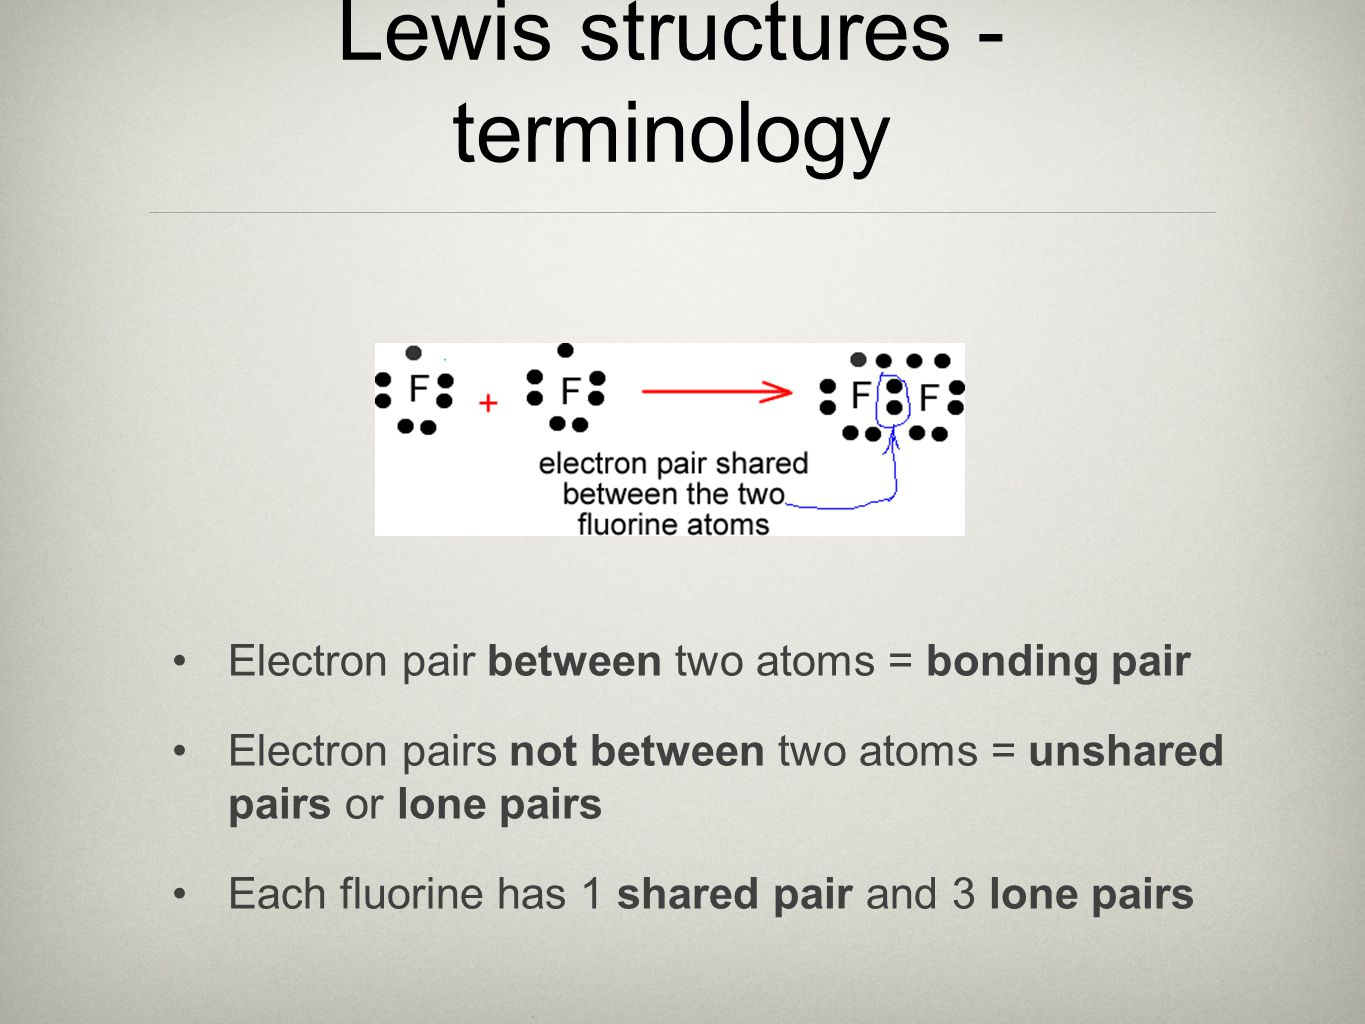 Lewis structures - terminology Electron pair between two atoms = bonding pair Electron pairs not between two atoms = unshared pairs or lone pairs Each fluorine has 1 shared pair and 3 lone pairs